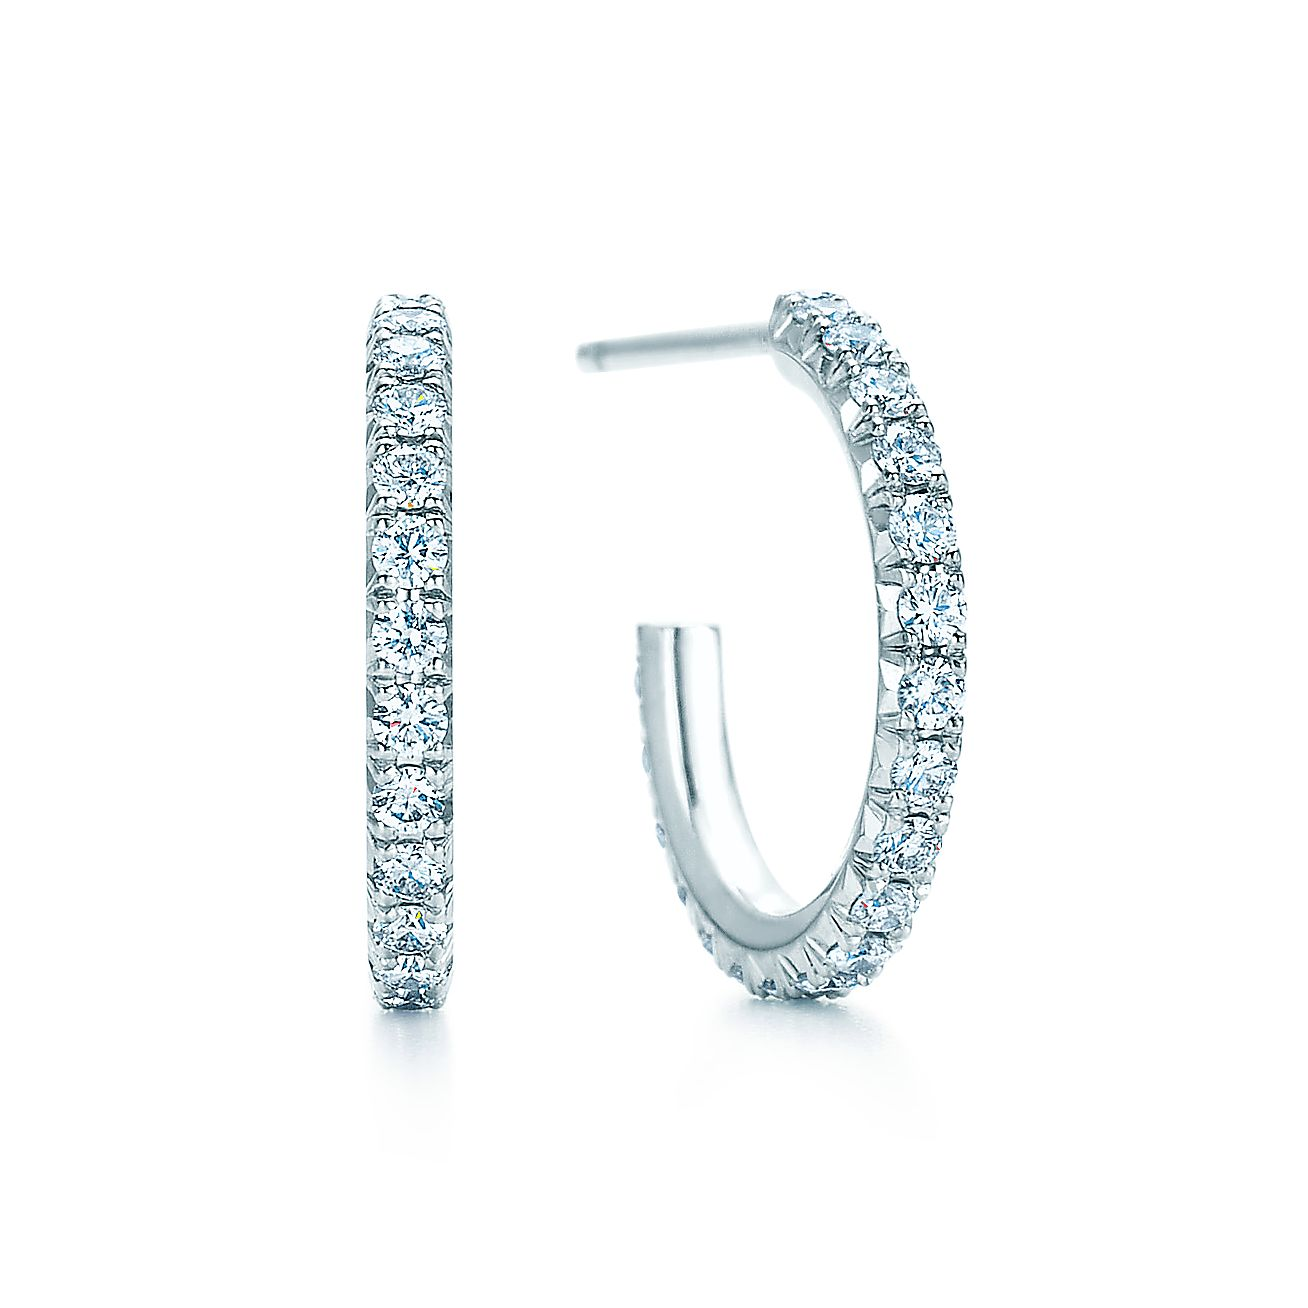 Tiffany Metro Hoop Earrings In 18k White Gold With Diamonds Small Co